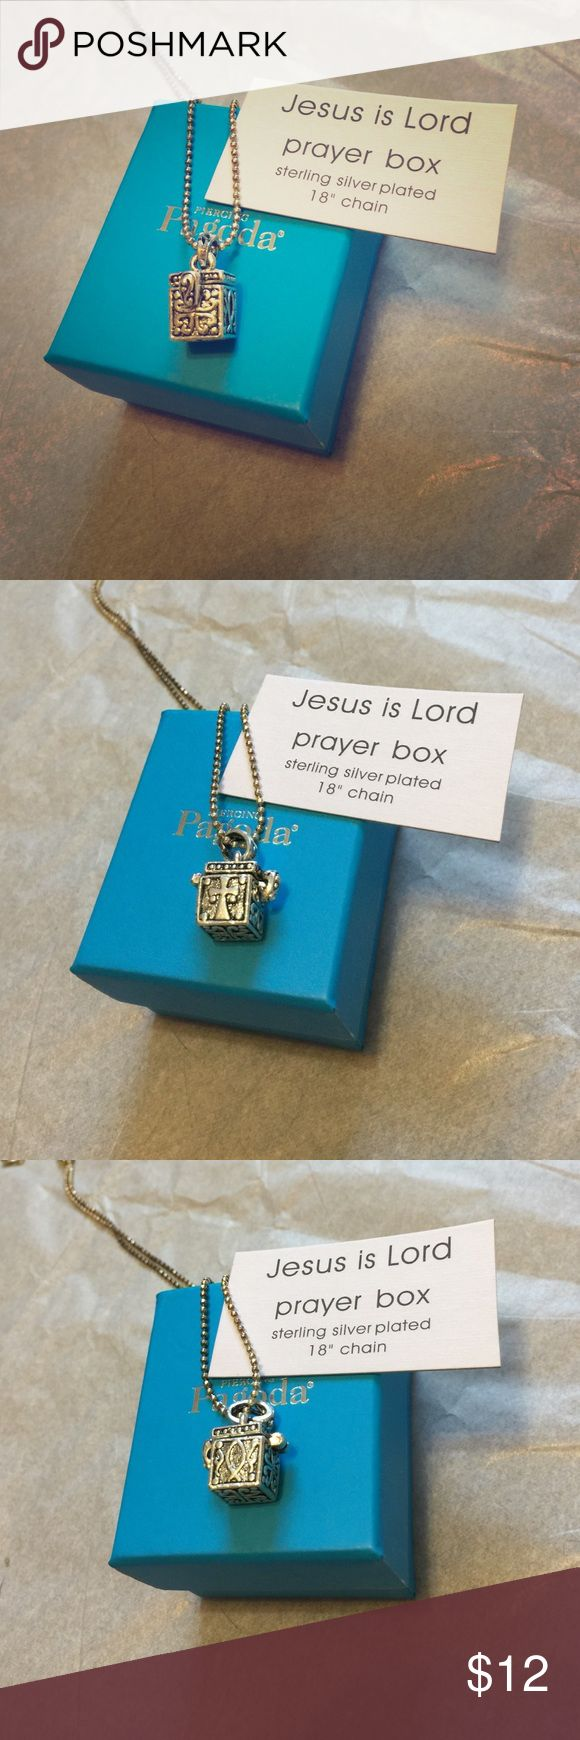 "NEW Silver Plated Prayer Box Necklace NEW Silver Plated Prayer Box Necklace. 18"" adjustable chain. Features a real opening box to put in itty bitty prayers  a cross, hearts and the fish designs. Would make an awesome gift, little blue box is included. Jesus is Lord.  Fast Shipping! Smoke Free Home! Open to Offers on my Items or 15% off Bundles! Top 10% Seller!  Piercing Pagoda Jewelry Necklaces"